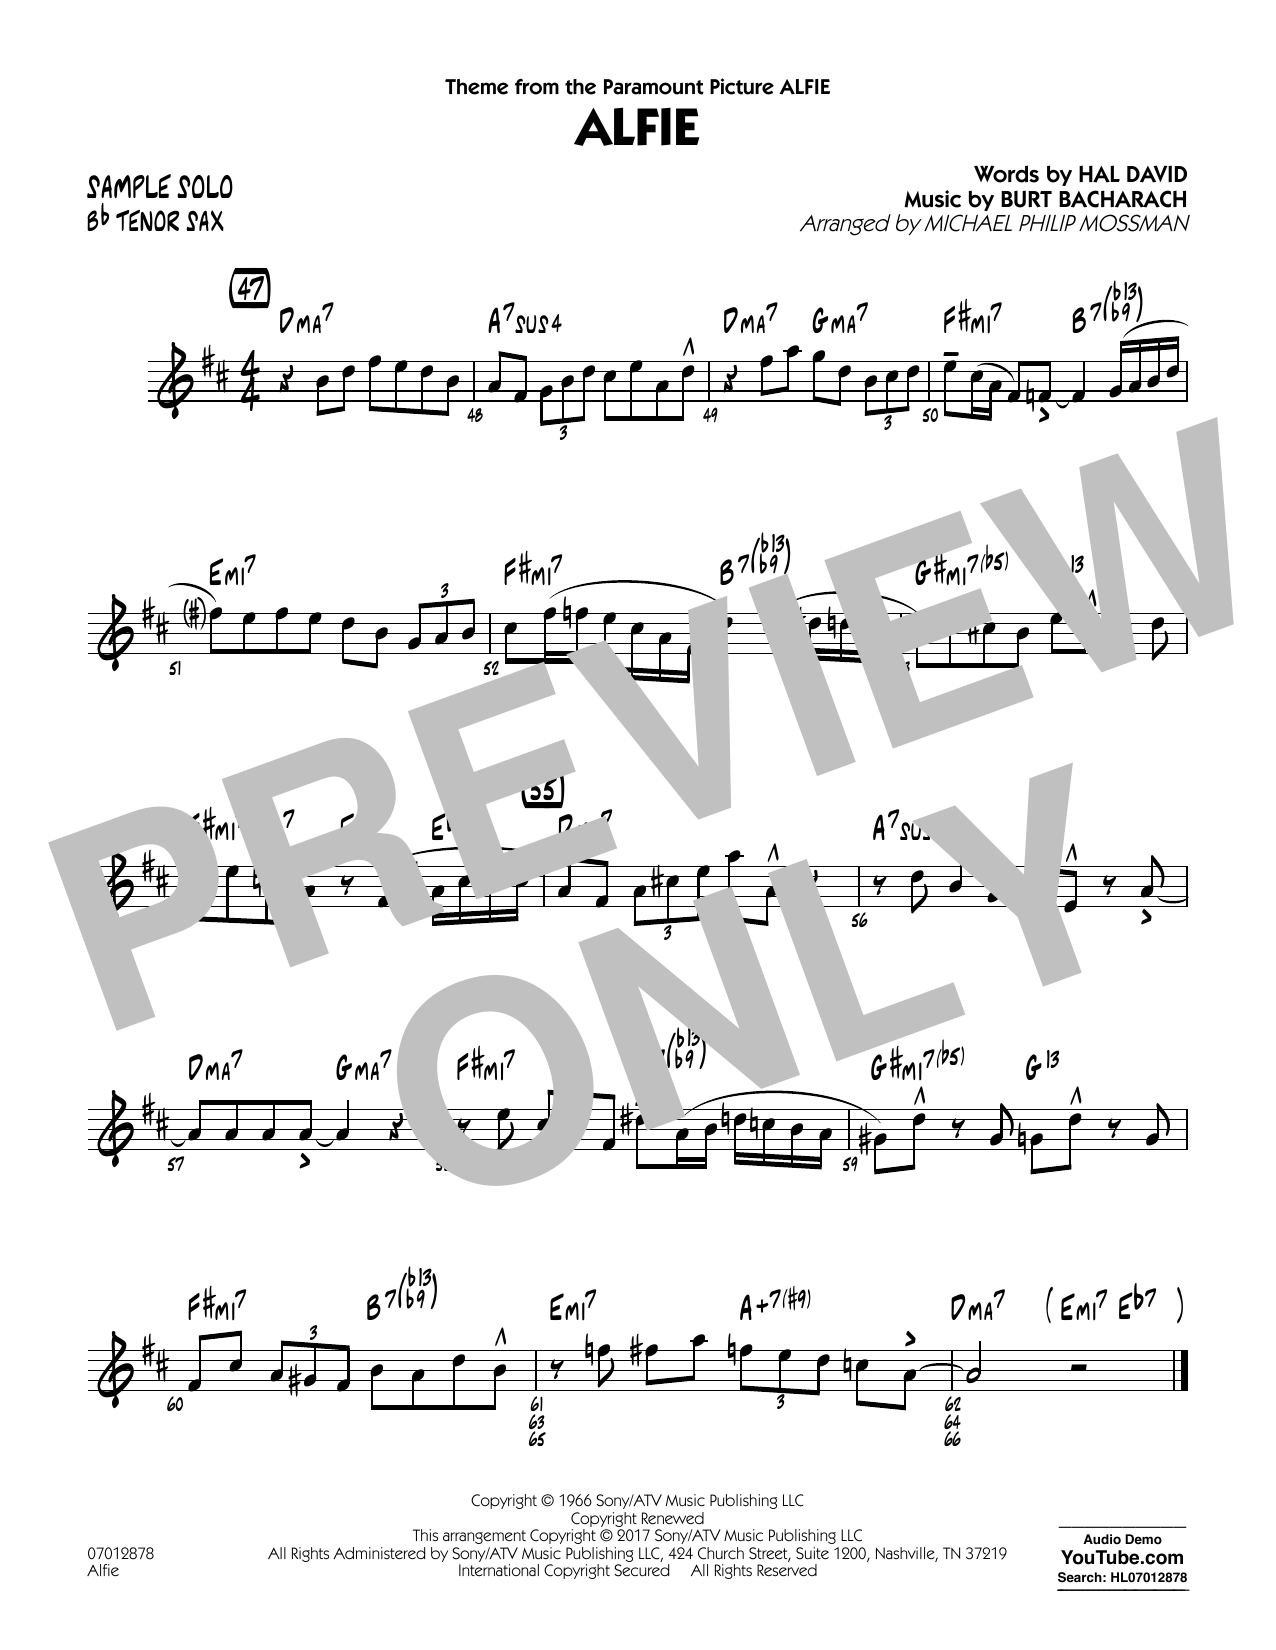 Alfie - Sample Solo - Tenor Sax Sheet Music